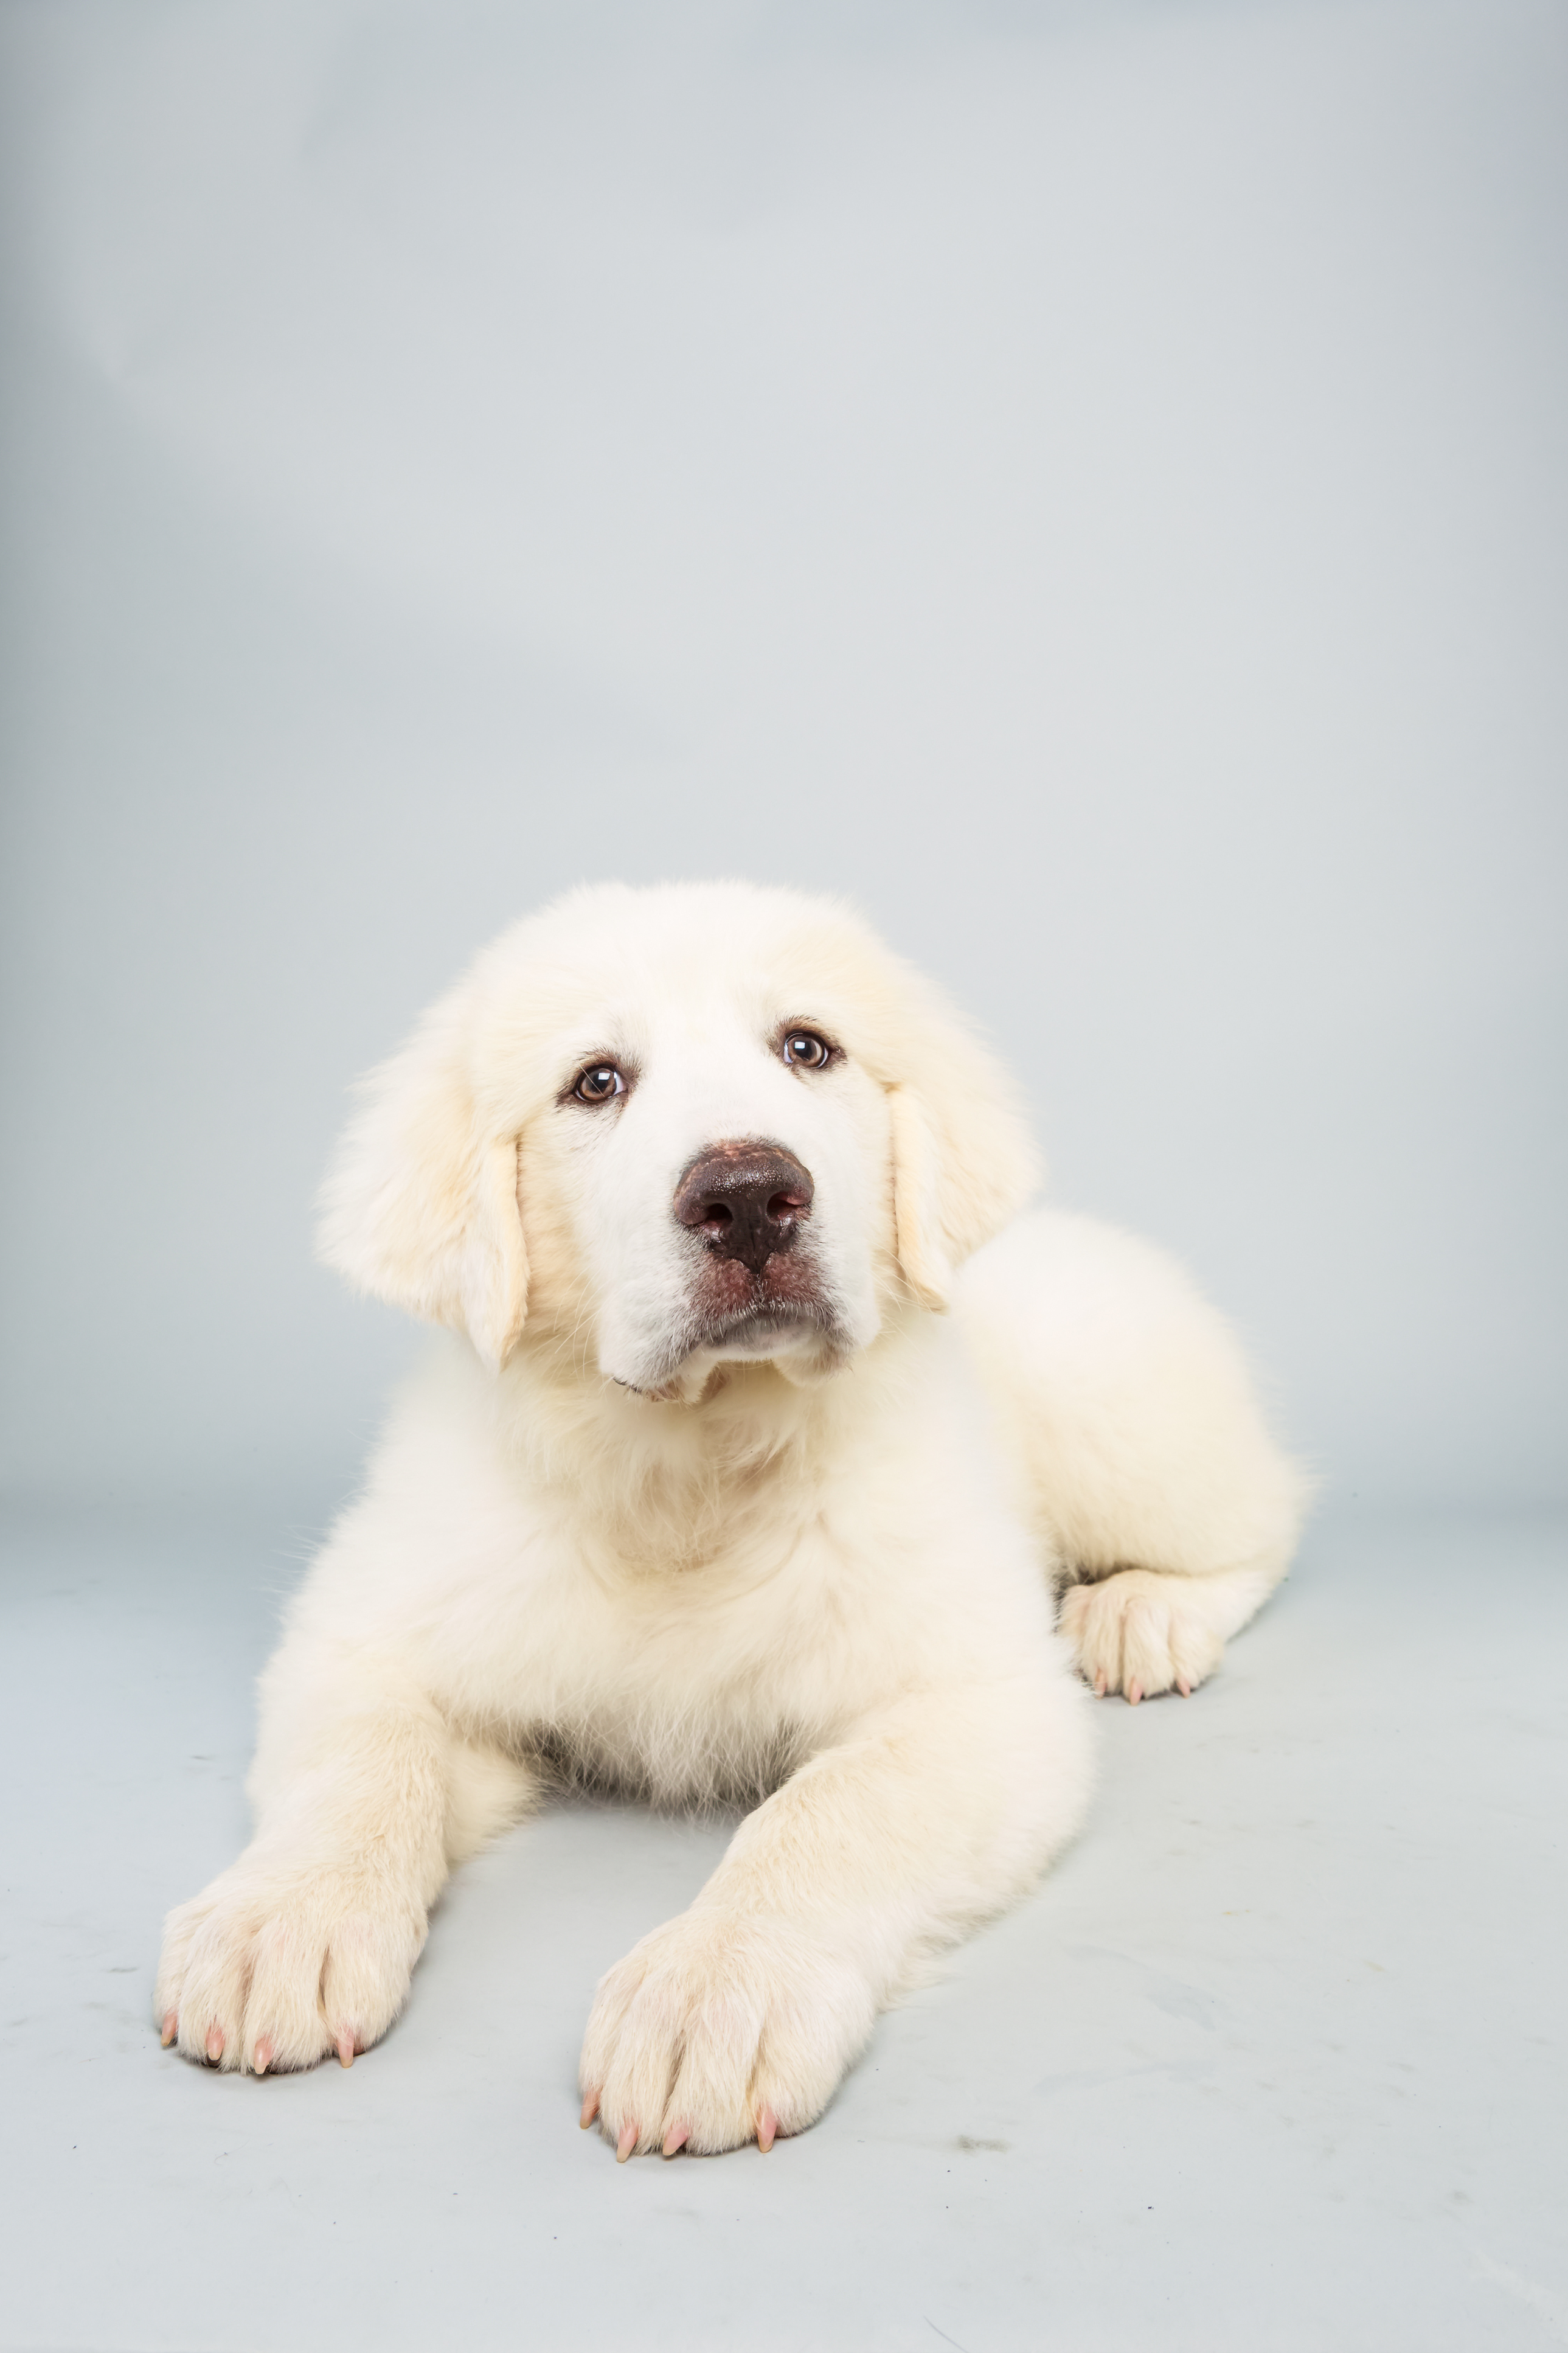 Shyla Age: 14 weeks Breed: Great Pyrenees Fact: Loves to snowboard.